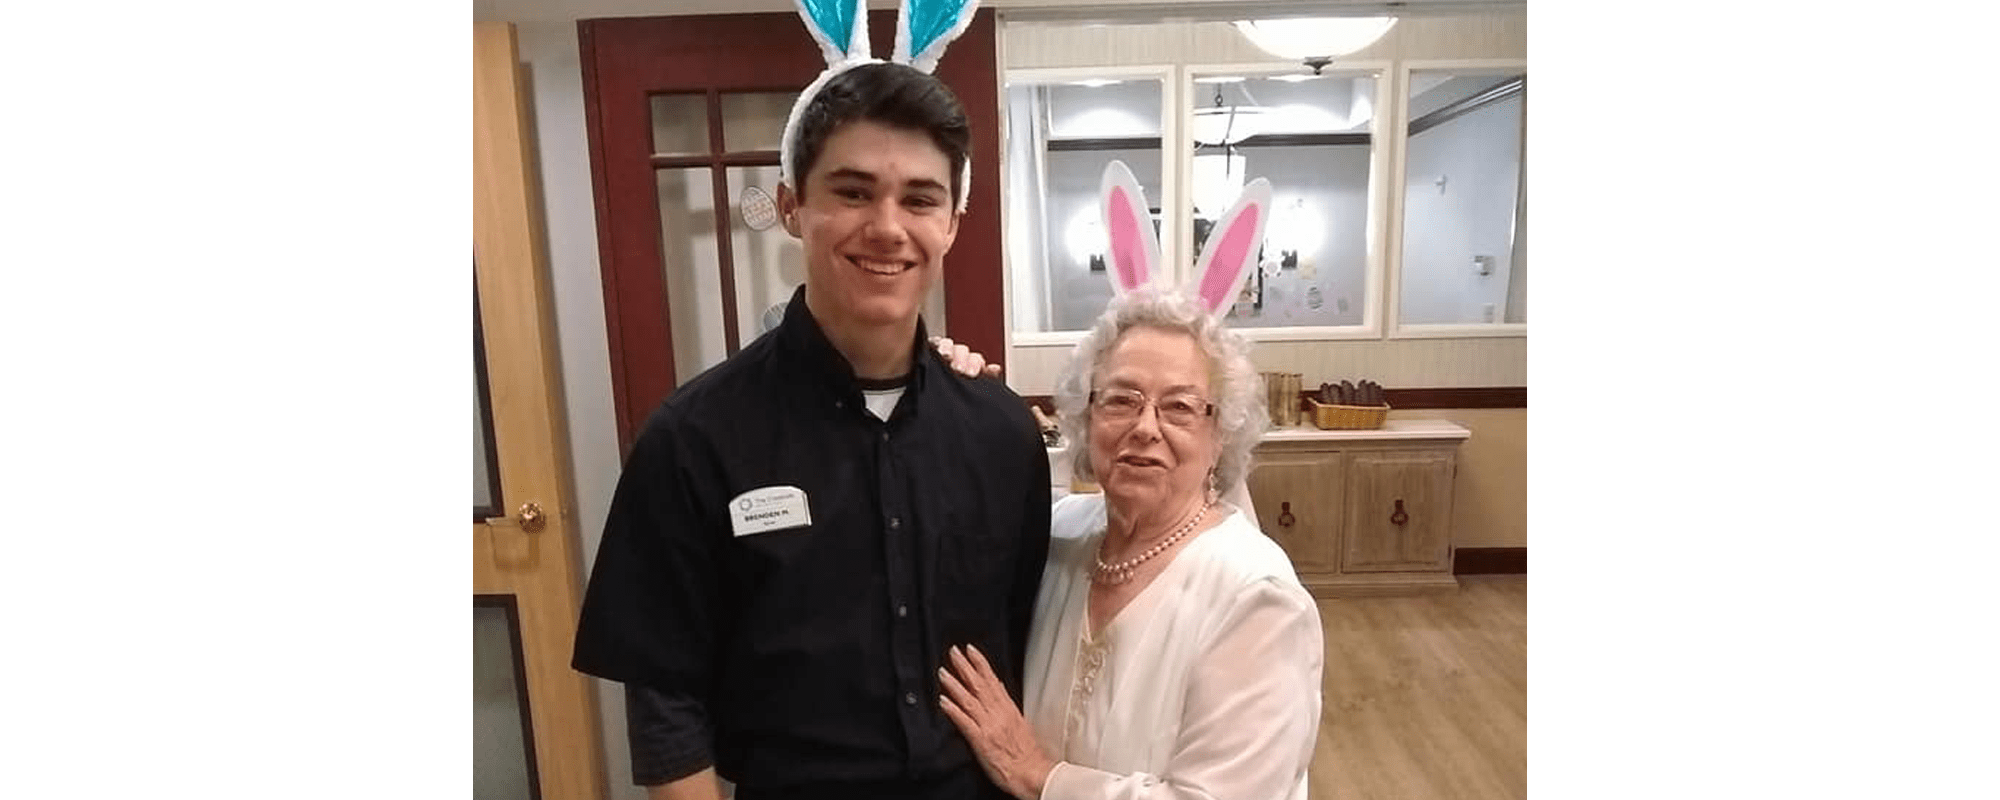 Senior hanging with a staff member at The Creekside in Woodinville, Washington